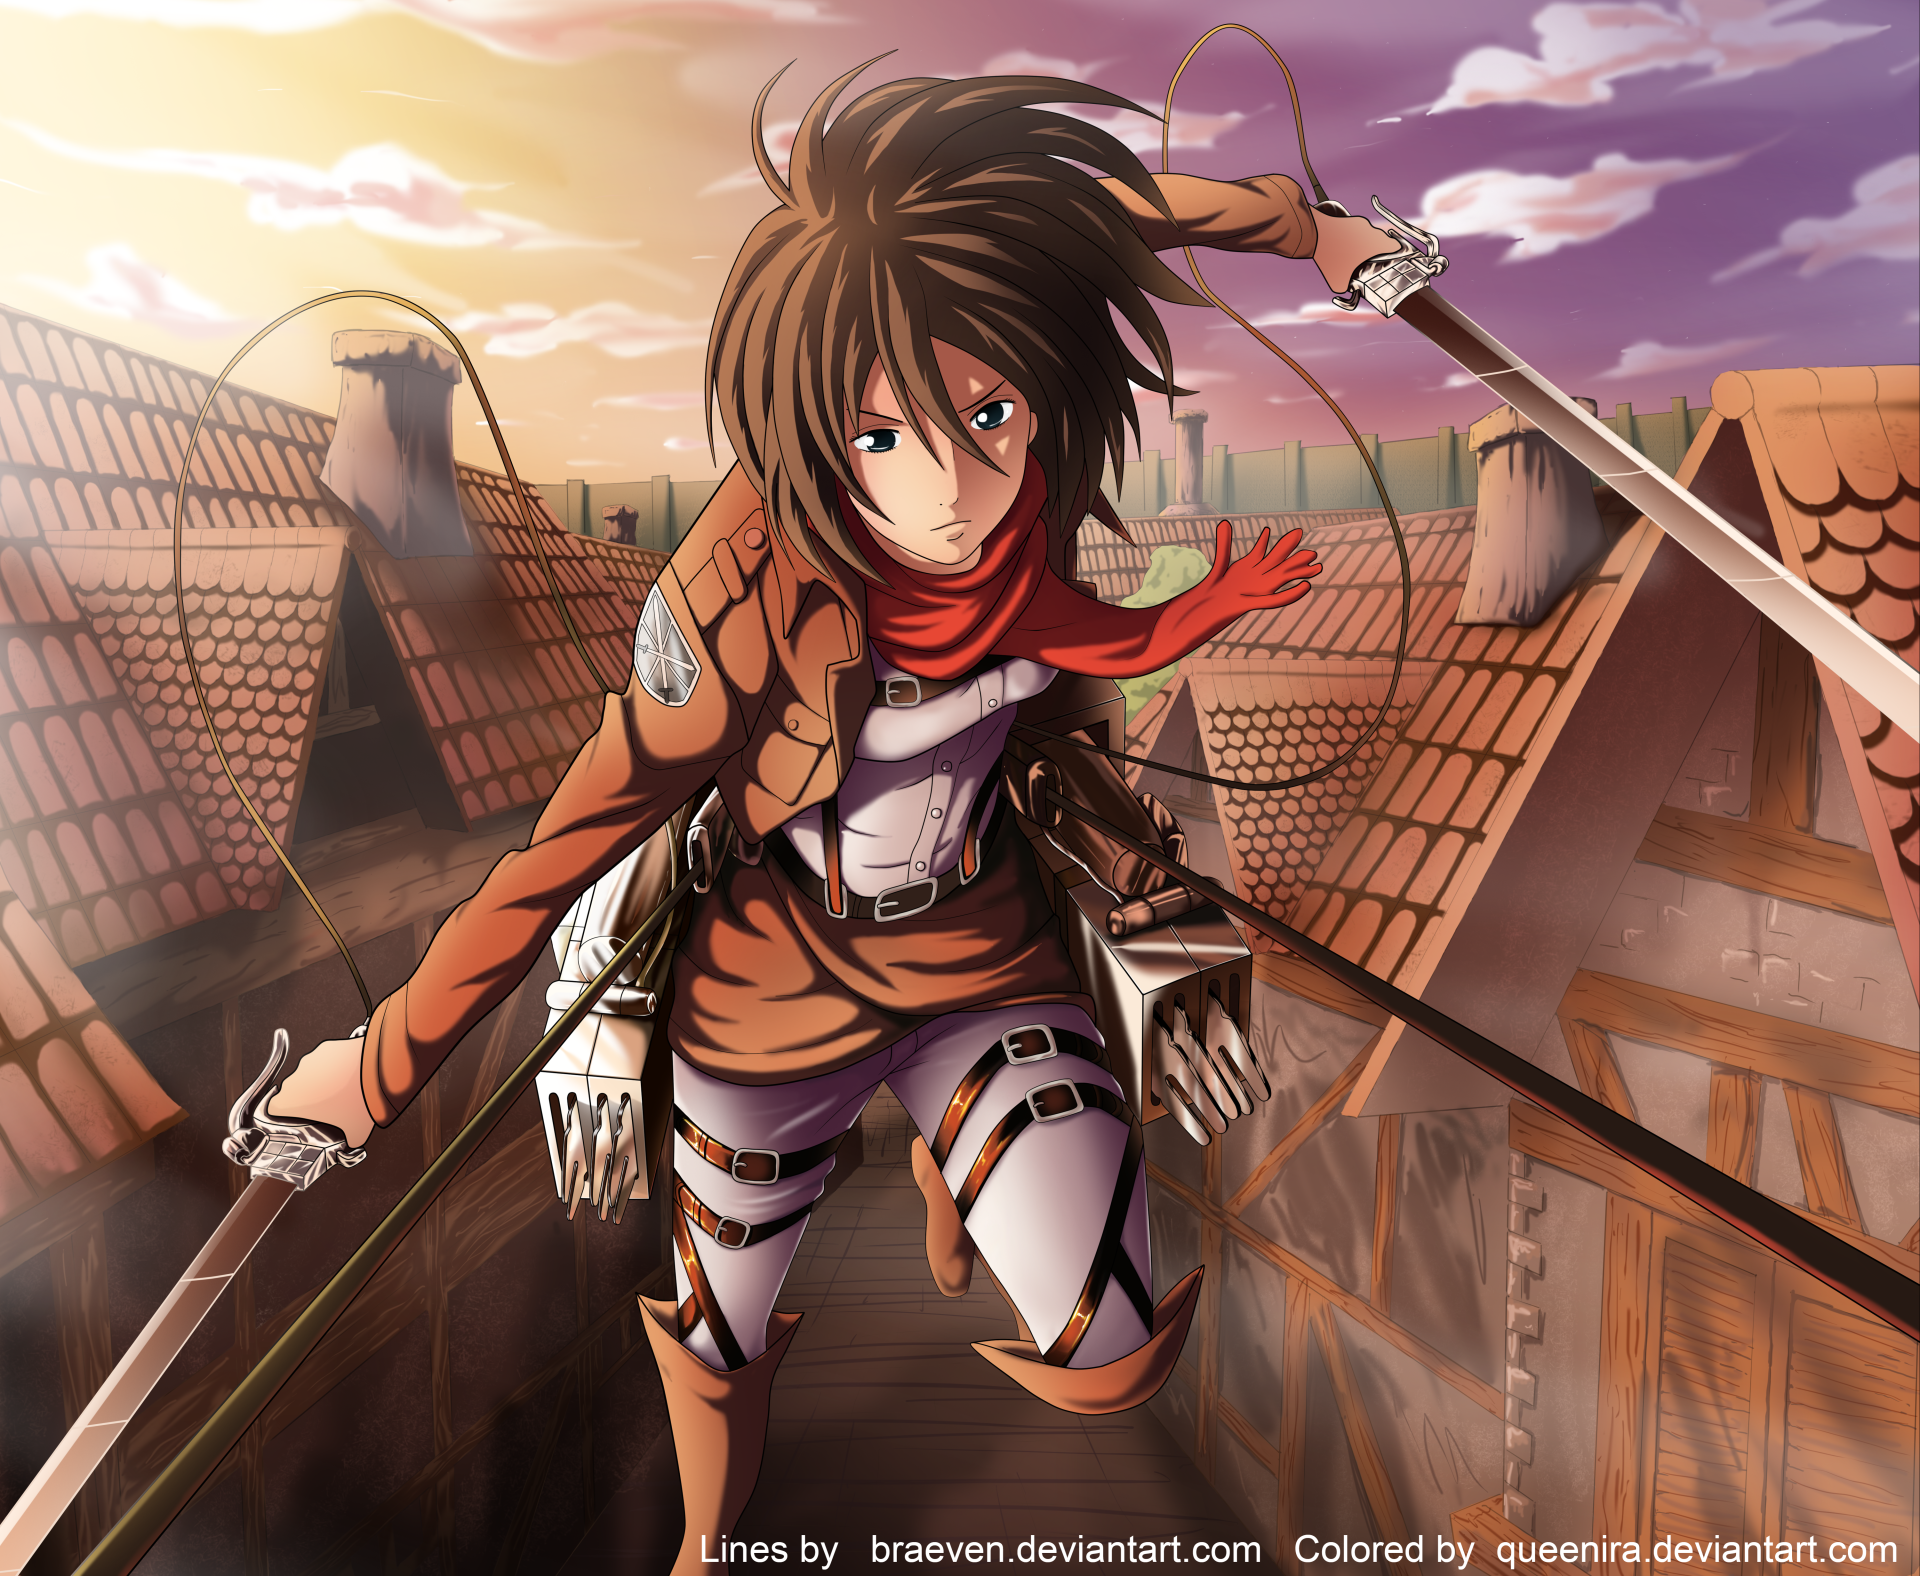 Anime Attack On Titan Shingeki No Kyojin Mikasa Ackerman Wallpaper Attack On Titan Attack On Titan Anime Cute Anime Character